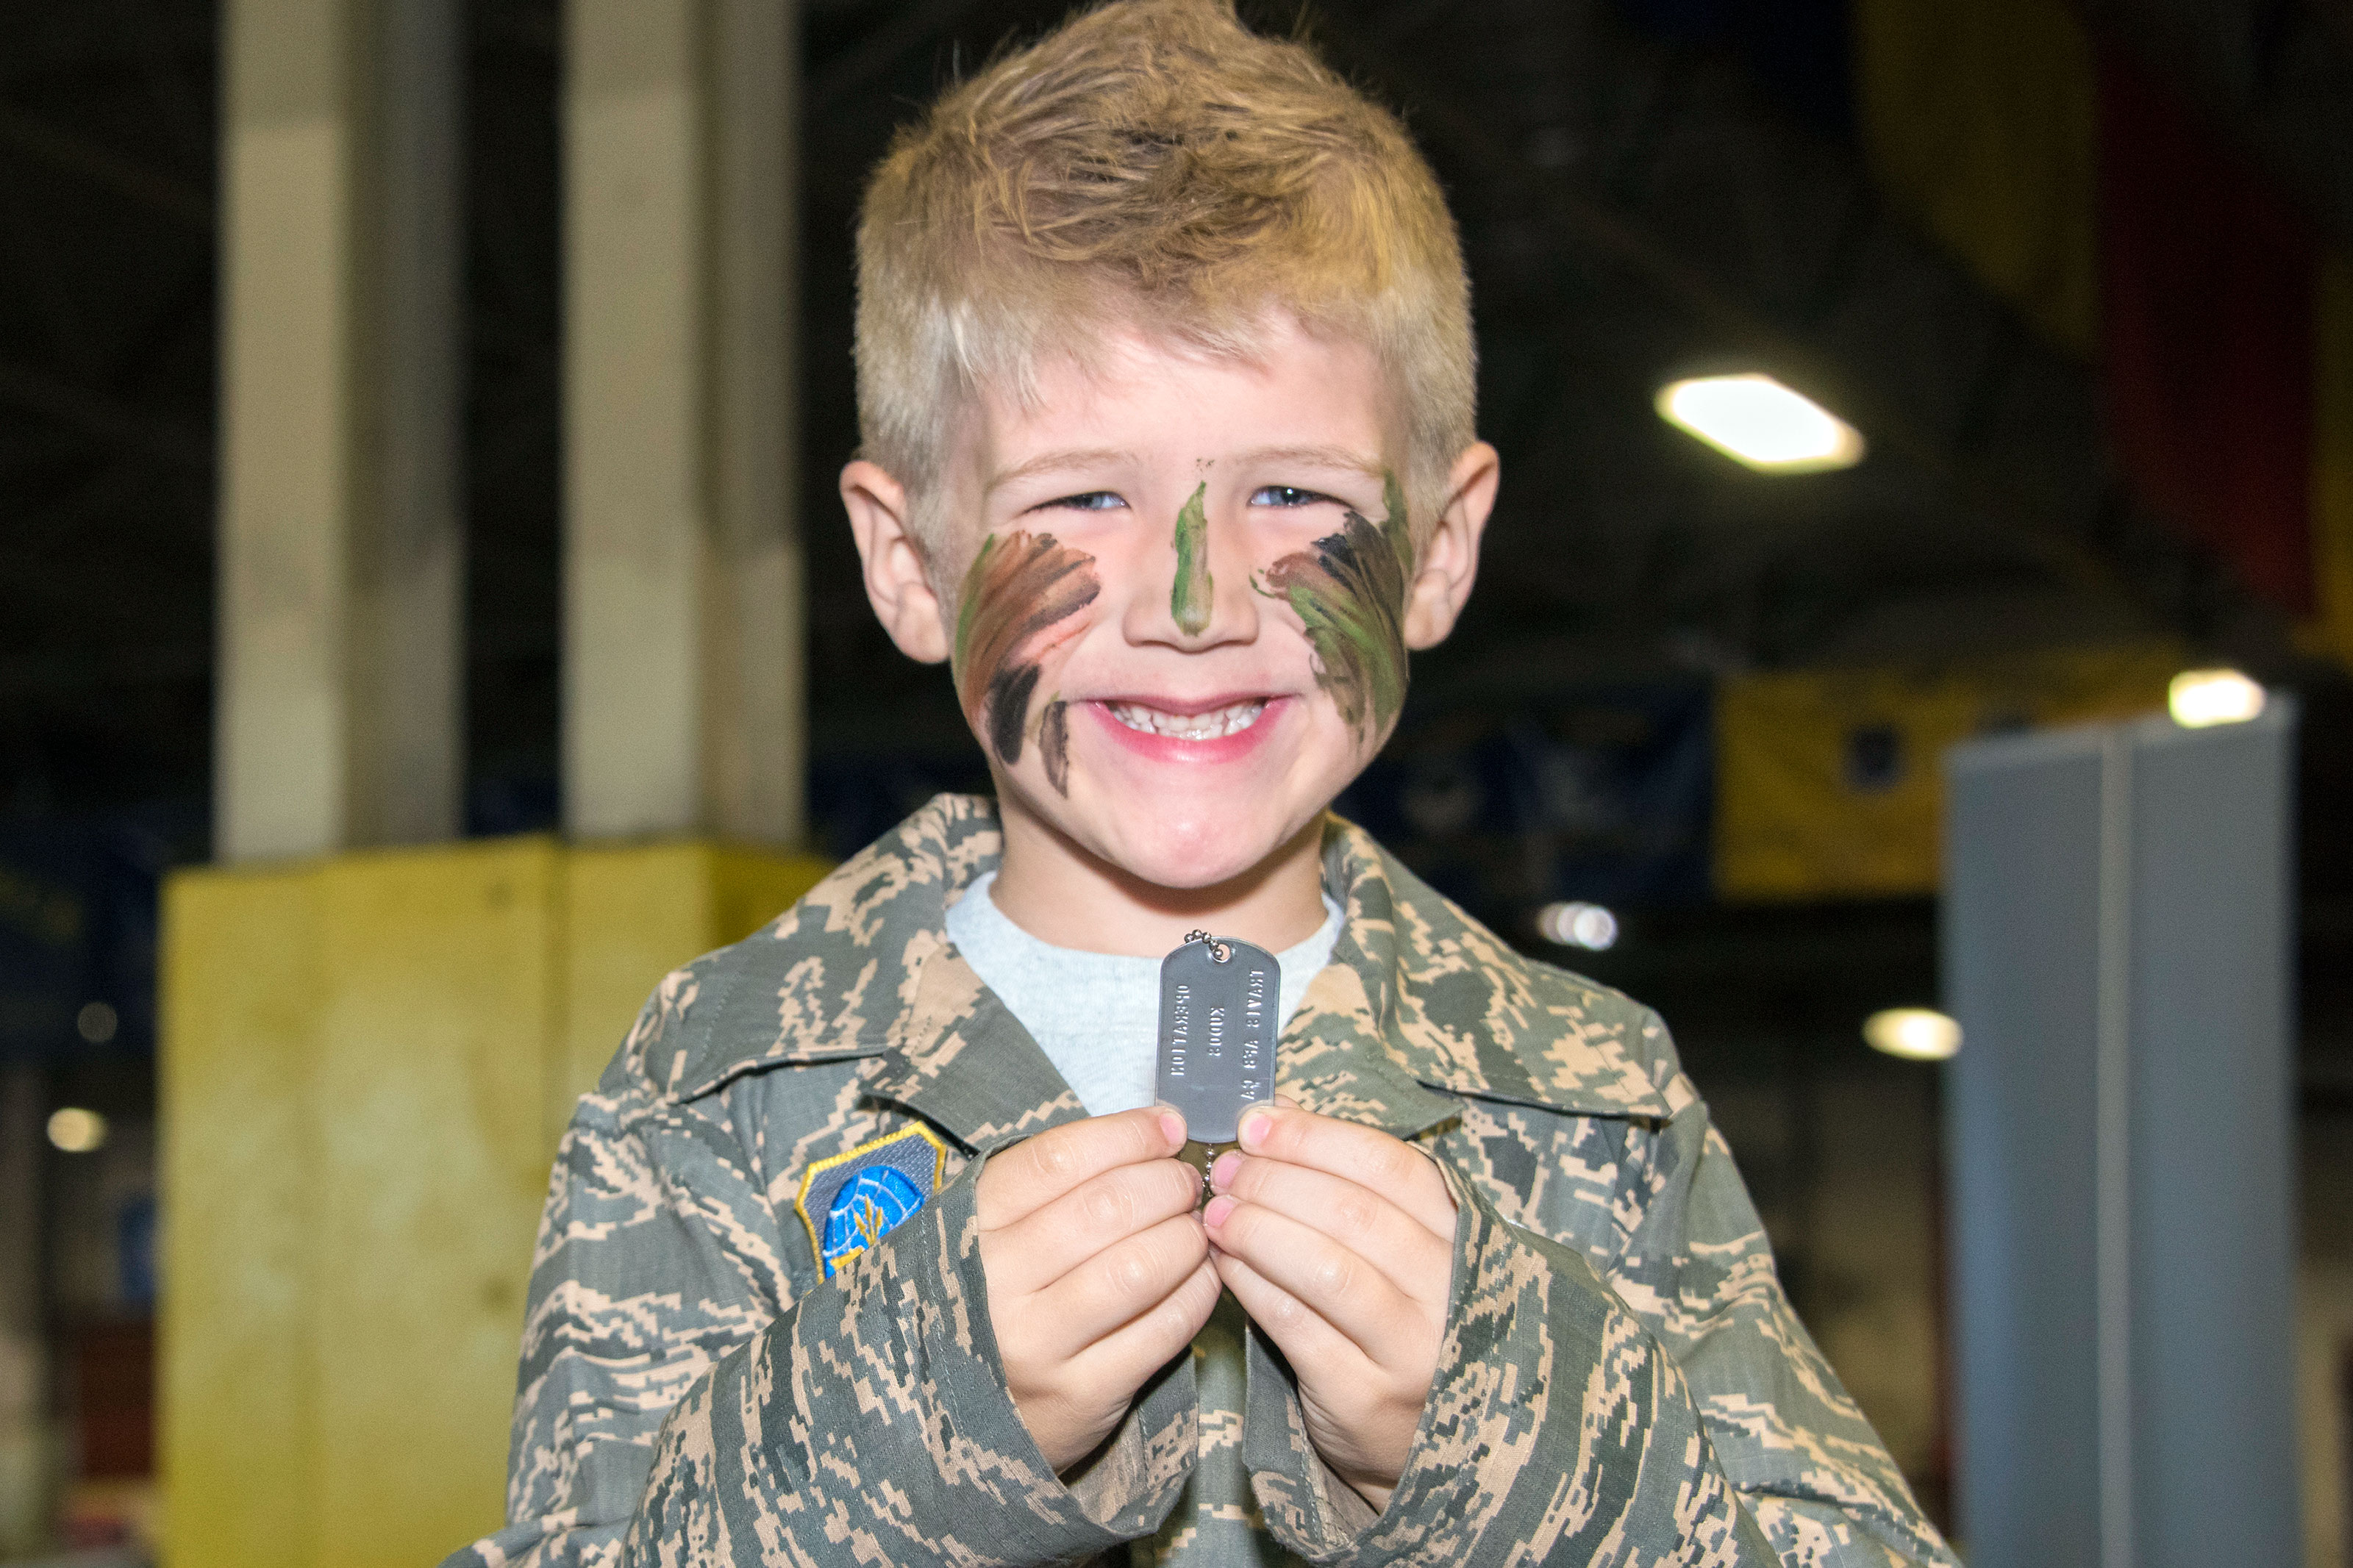 A child displays the dog tags he received as part the out-processing line at the 60th Aerial Port Squadron cargo warehouse, set up to host U. S. Air Force families for Kids Understanding Deployment Operations day, Oct. 21, 2017, Travis Air Force Base Calif. (U.S. Air Force/Heide Couch)